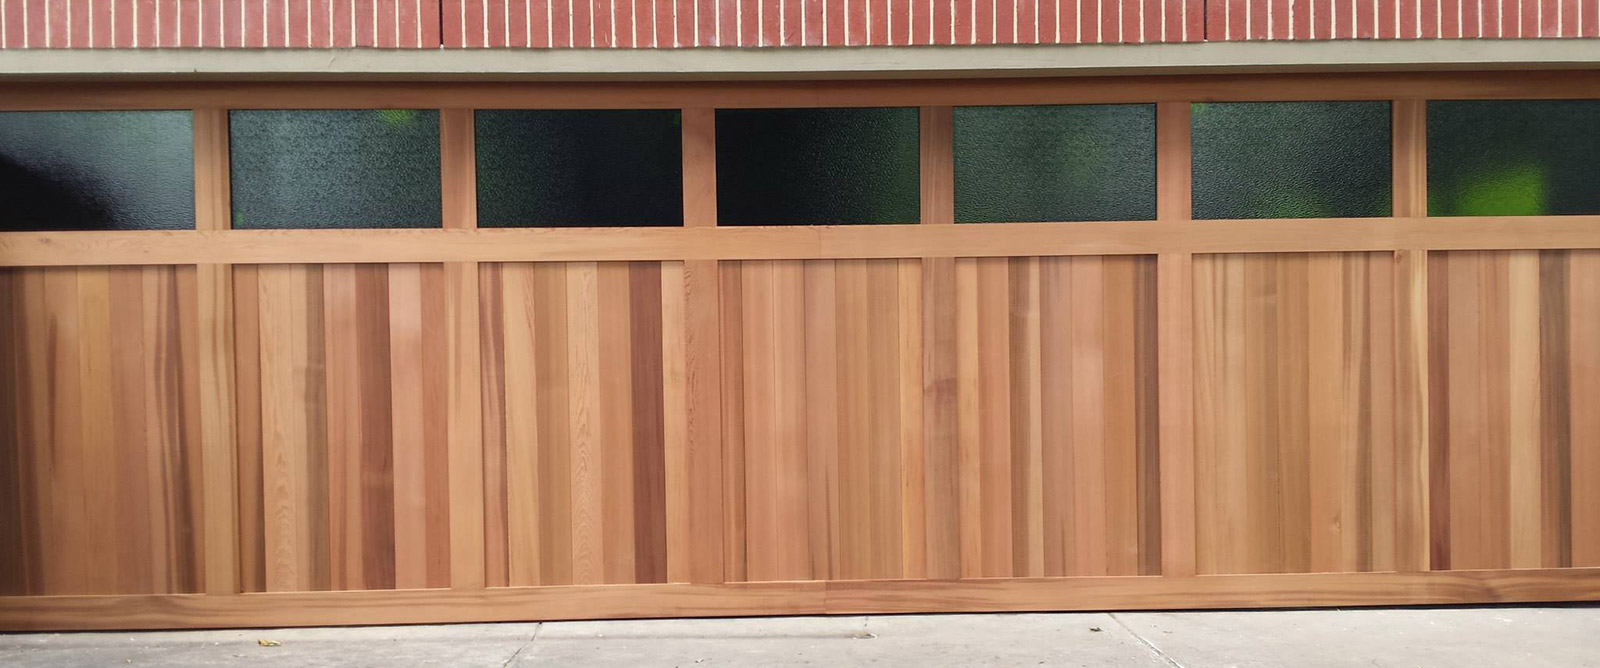 Cedar-counterweight-with-windows-Garage-Door-Slide